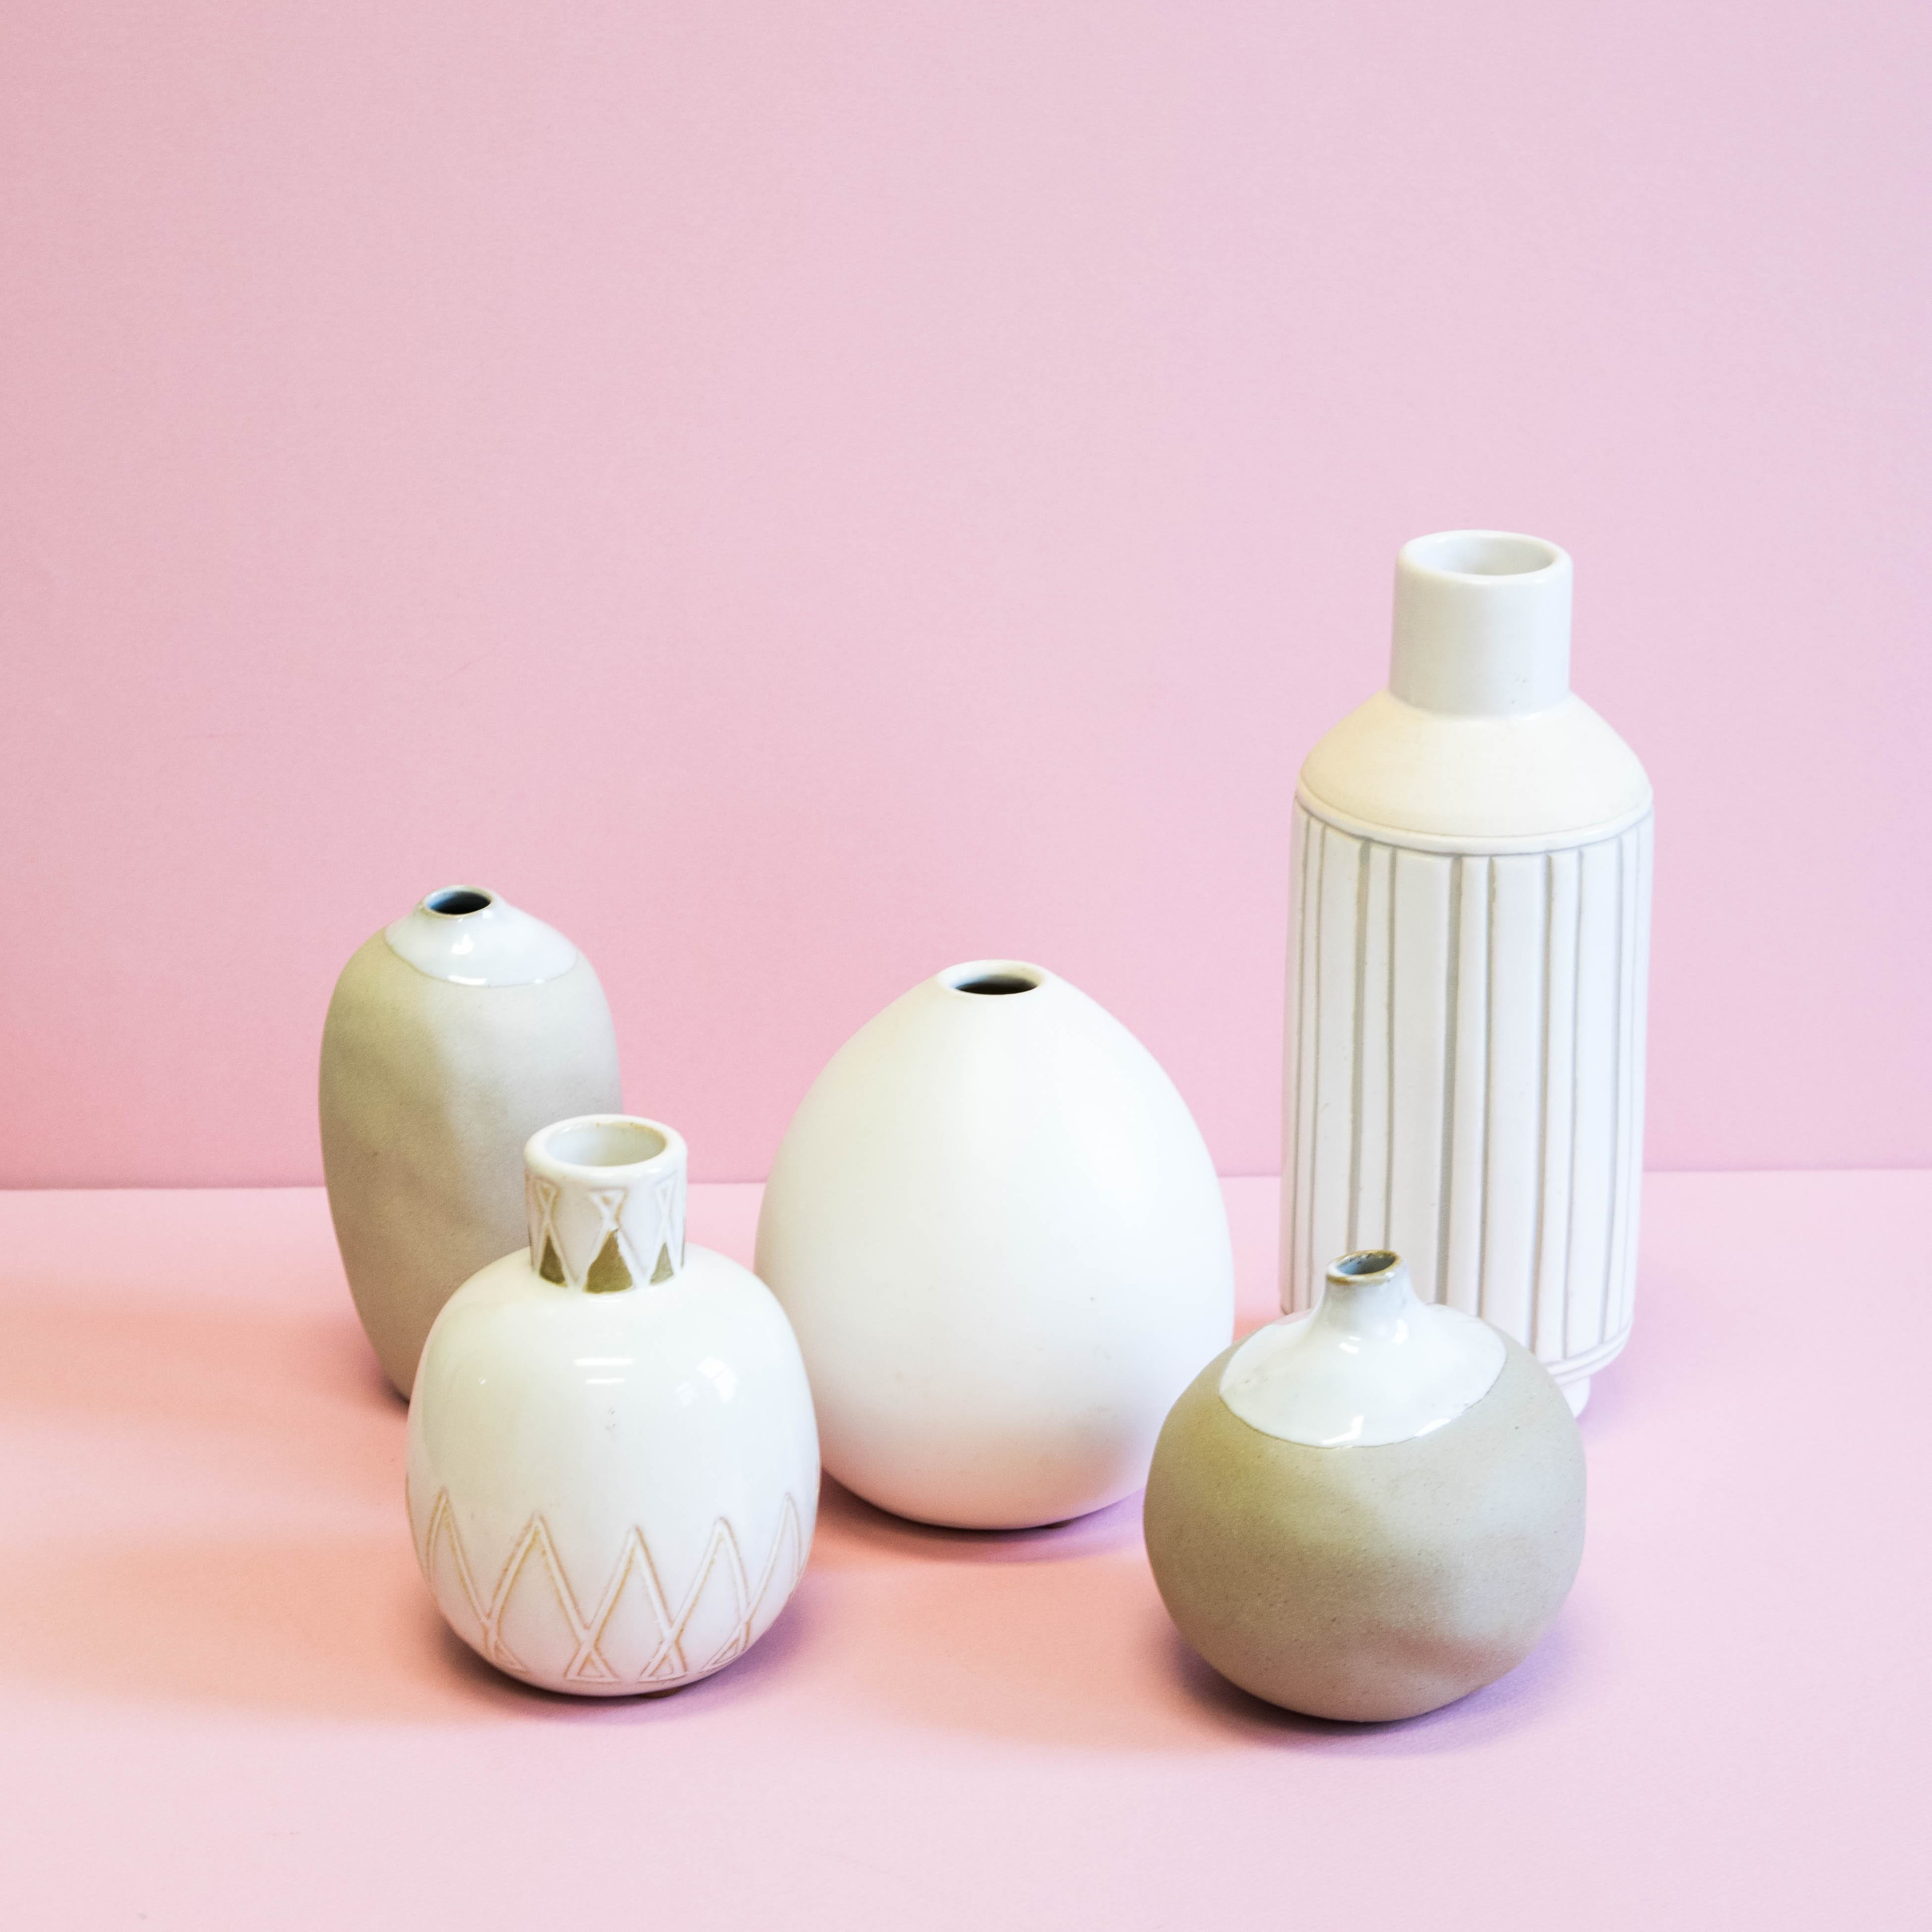 Neutral Ceramic Vessels